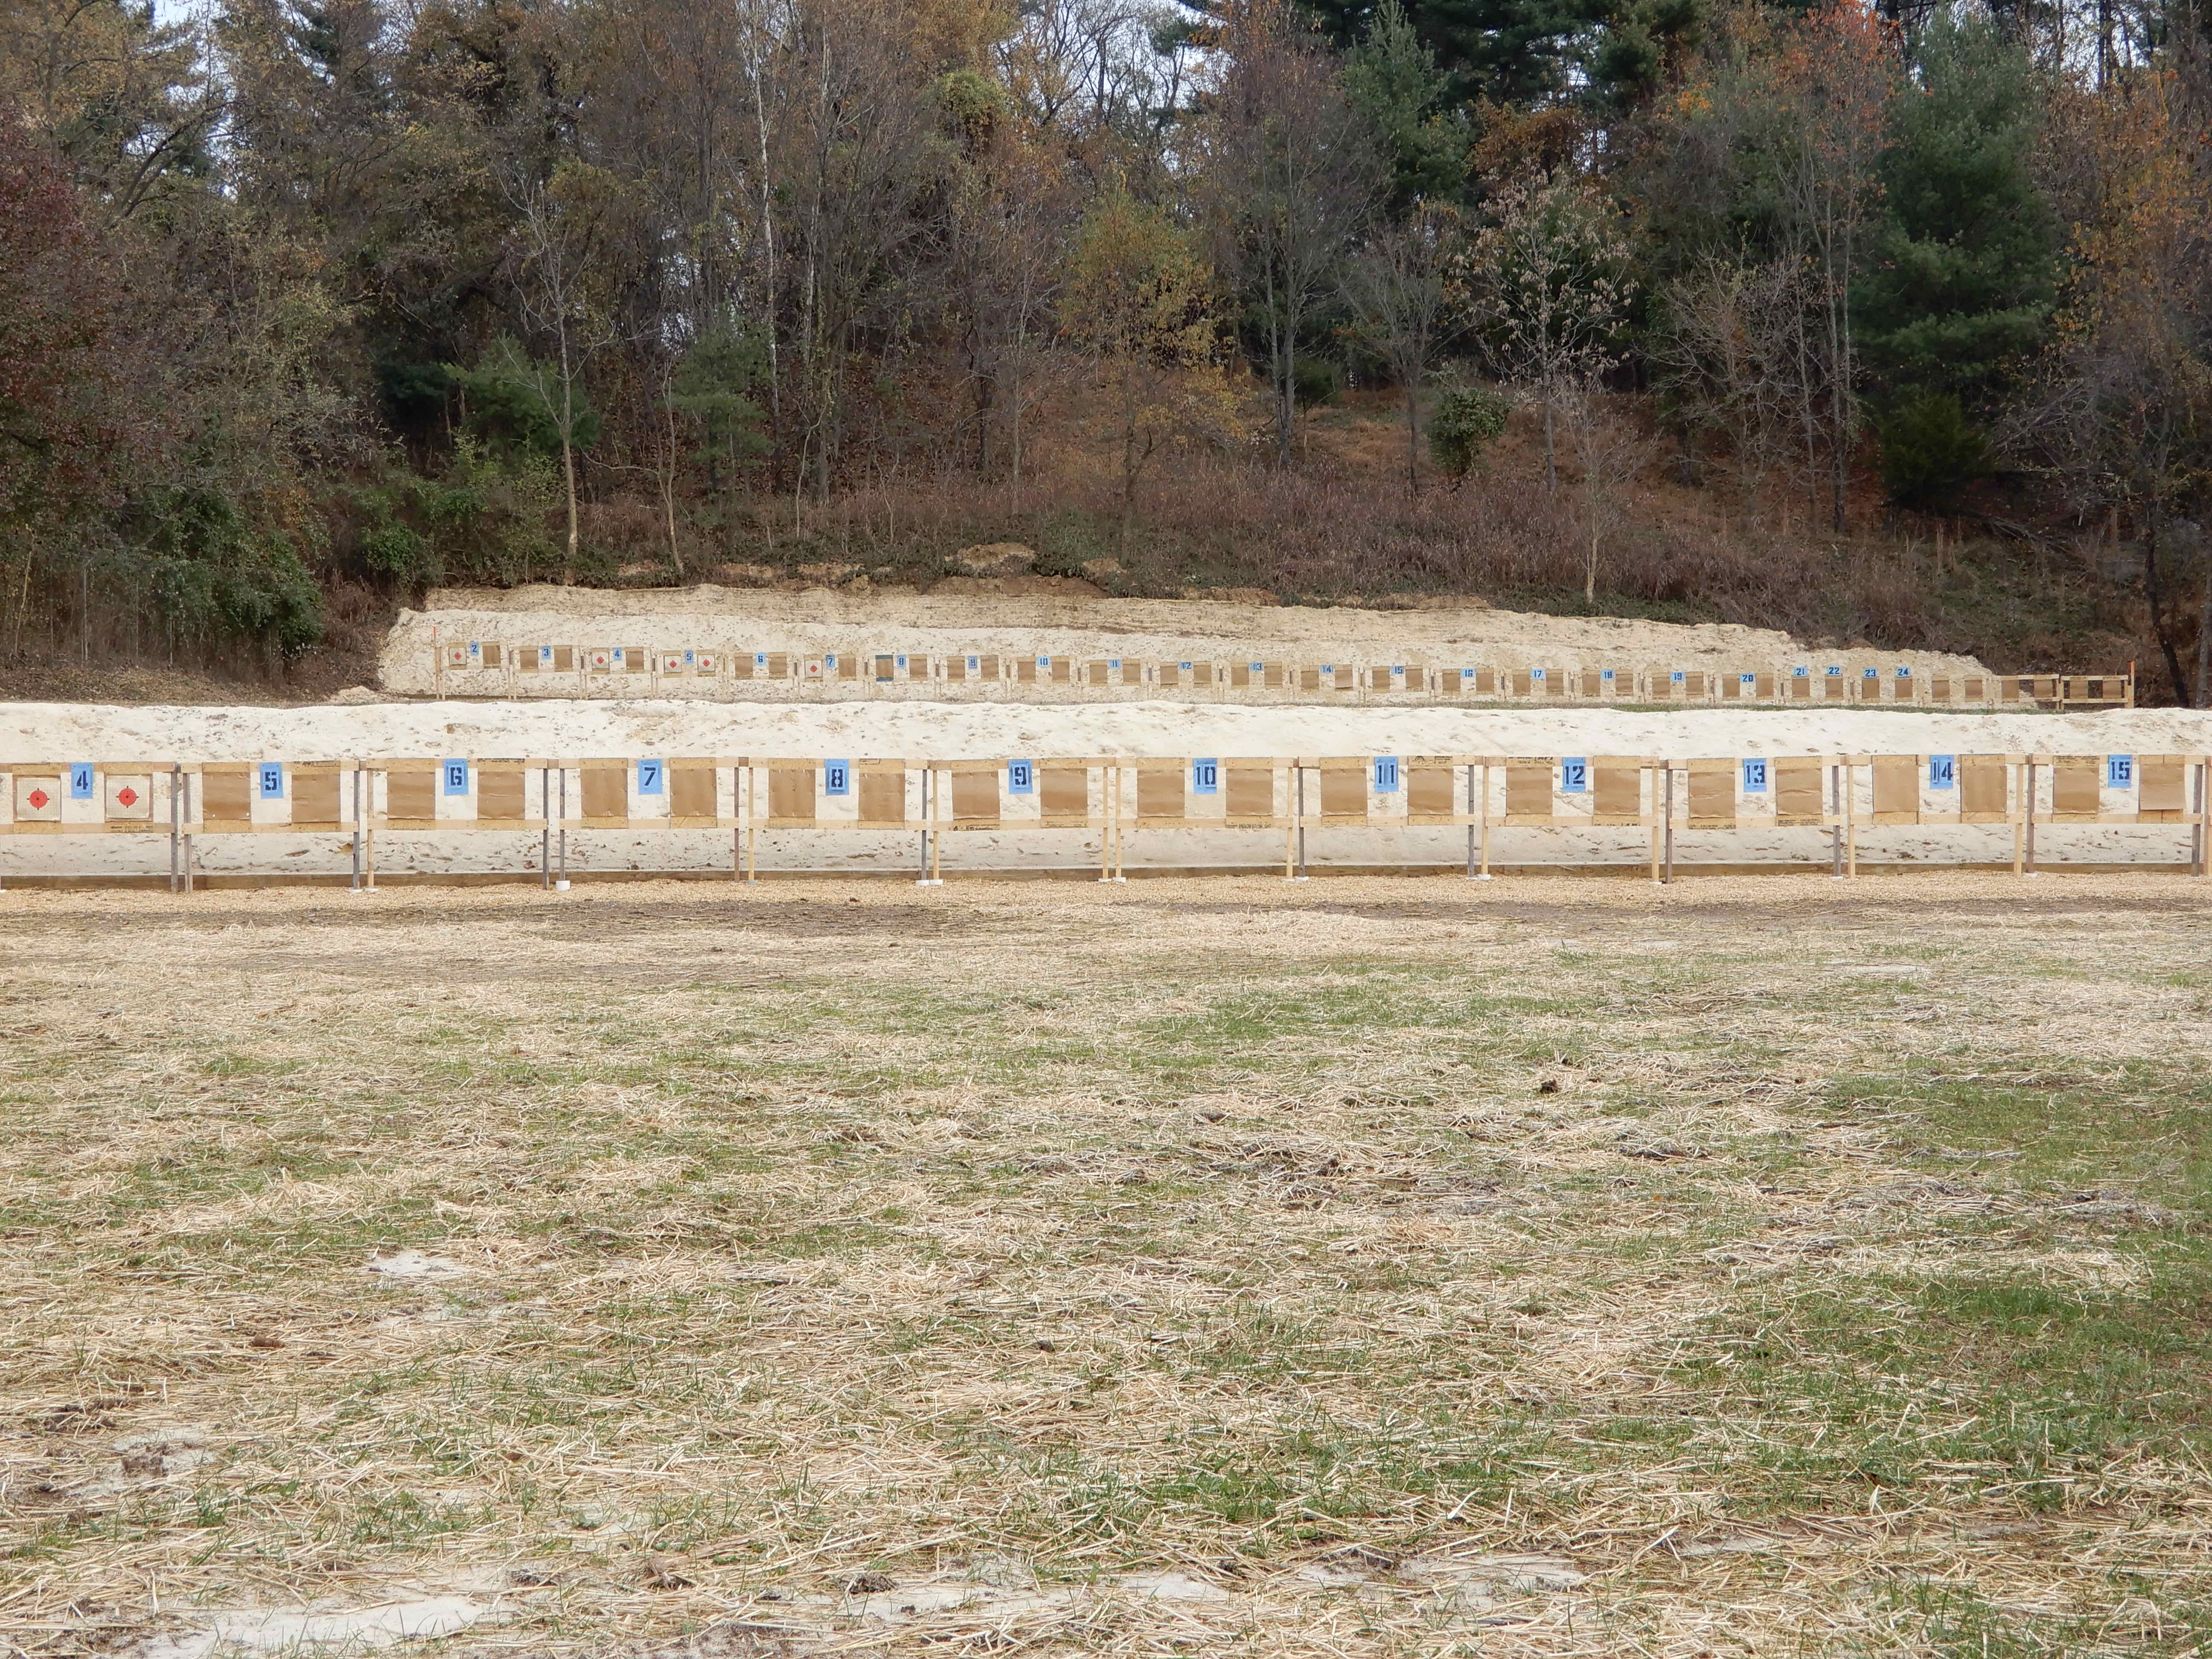 50 and 100 Yard Rifle Targets